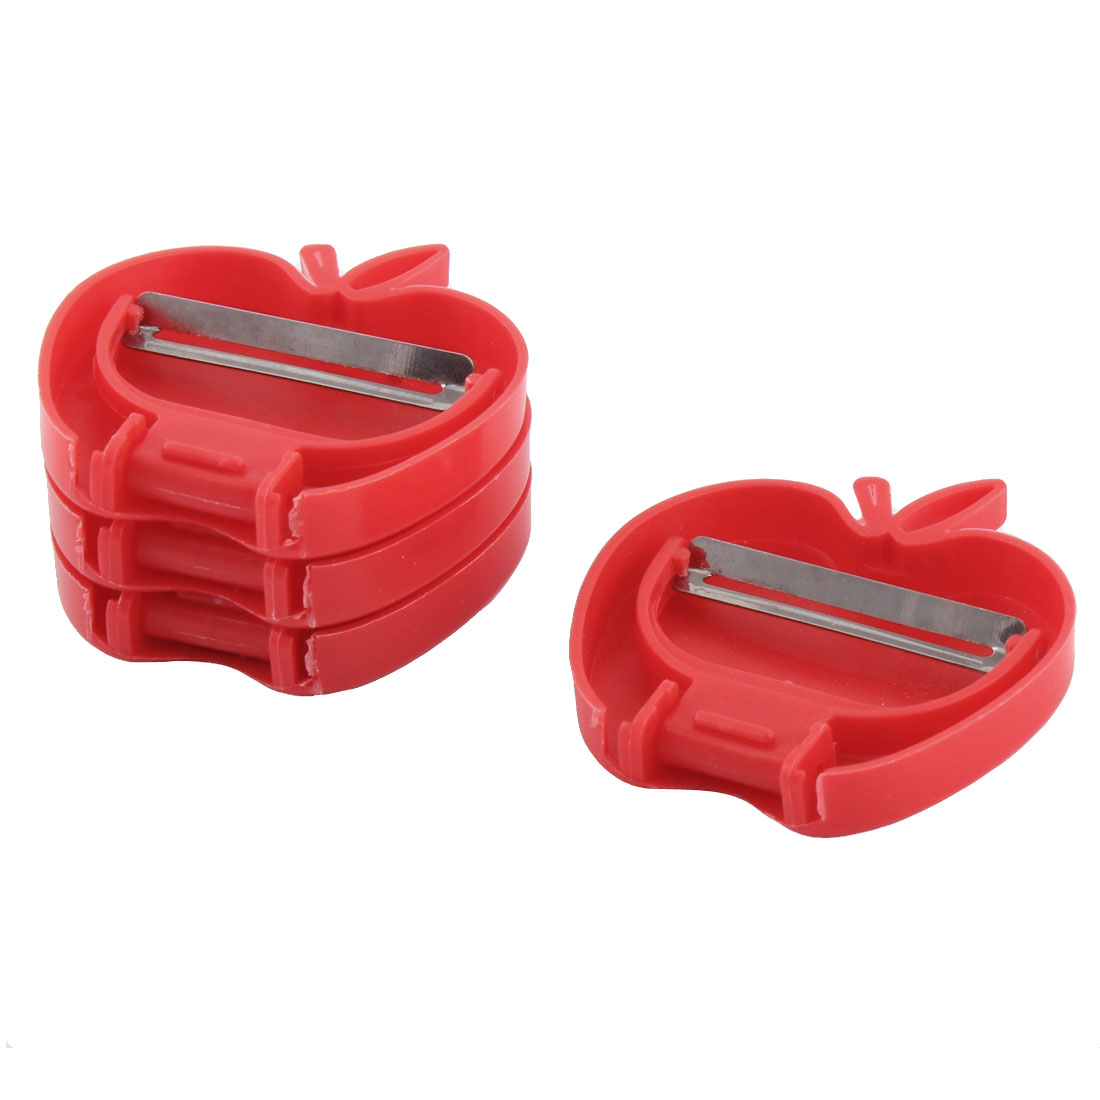 Kitchen Plastic Handle Apple Shaped Foldable Fruit Vegetable Peeler Red 4pcs